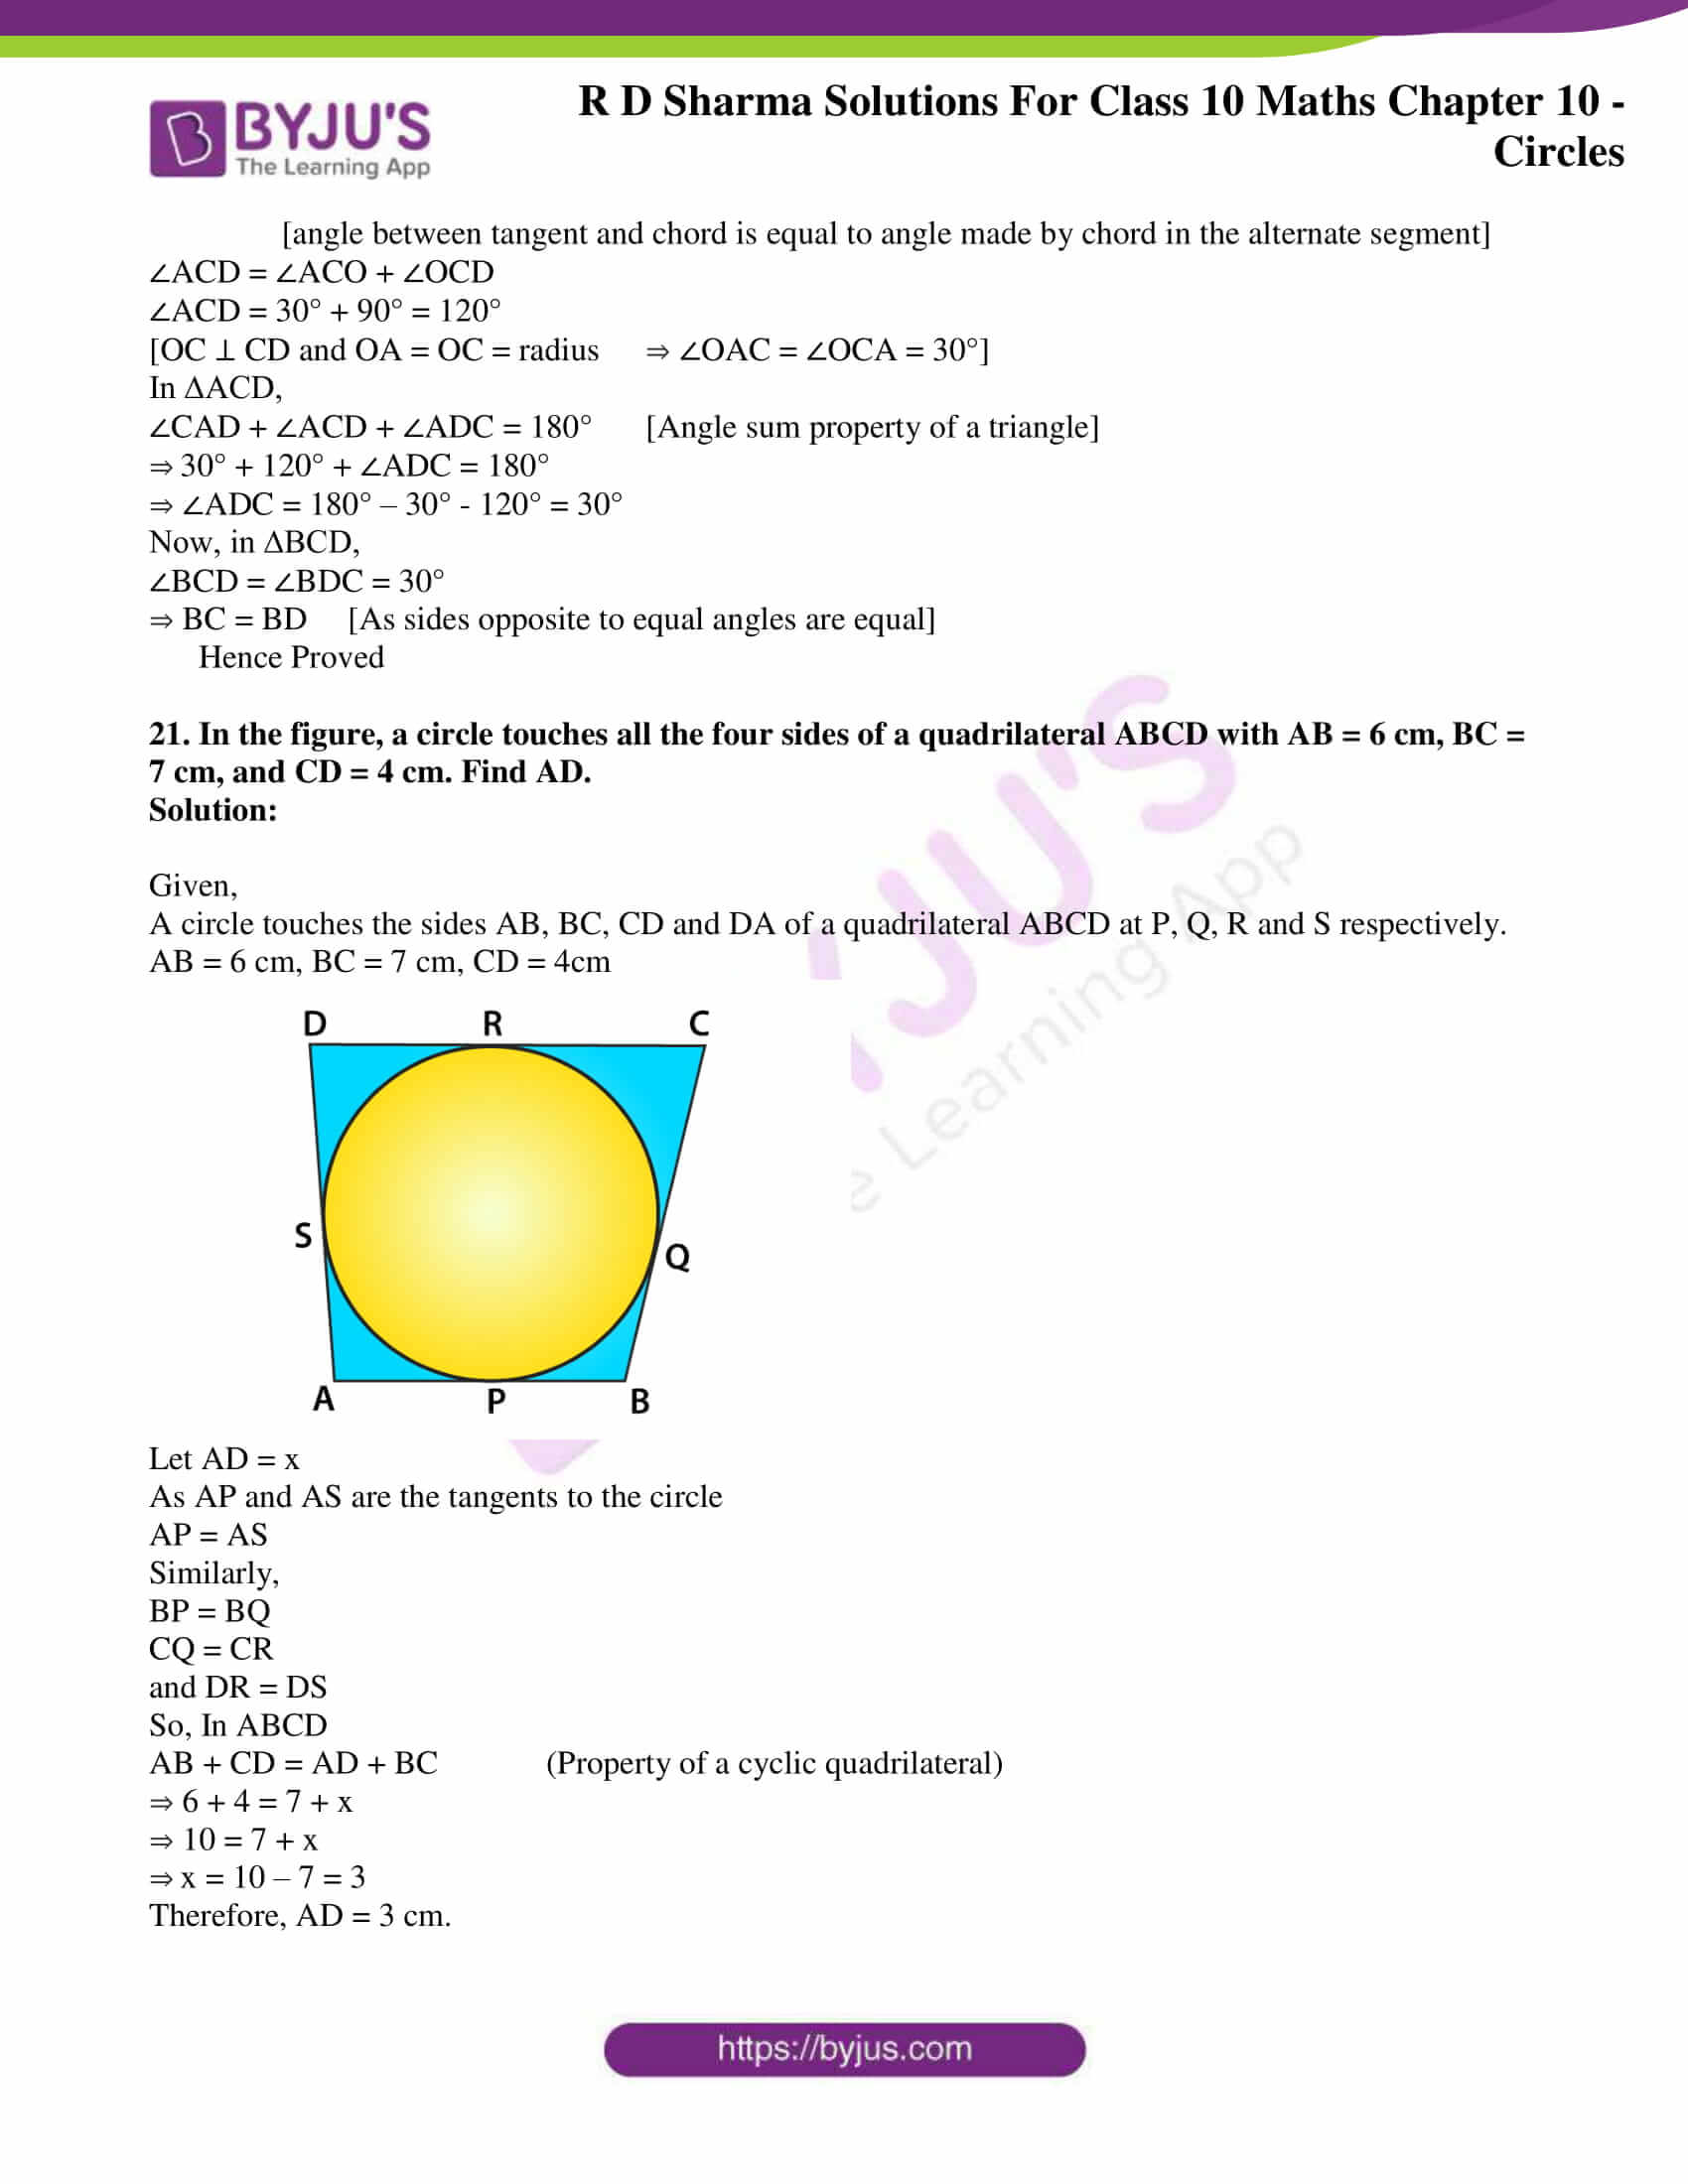 rd sharma class 10 chapter 10 circles solutions exercise 2 15